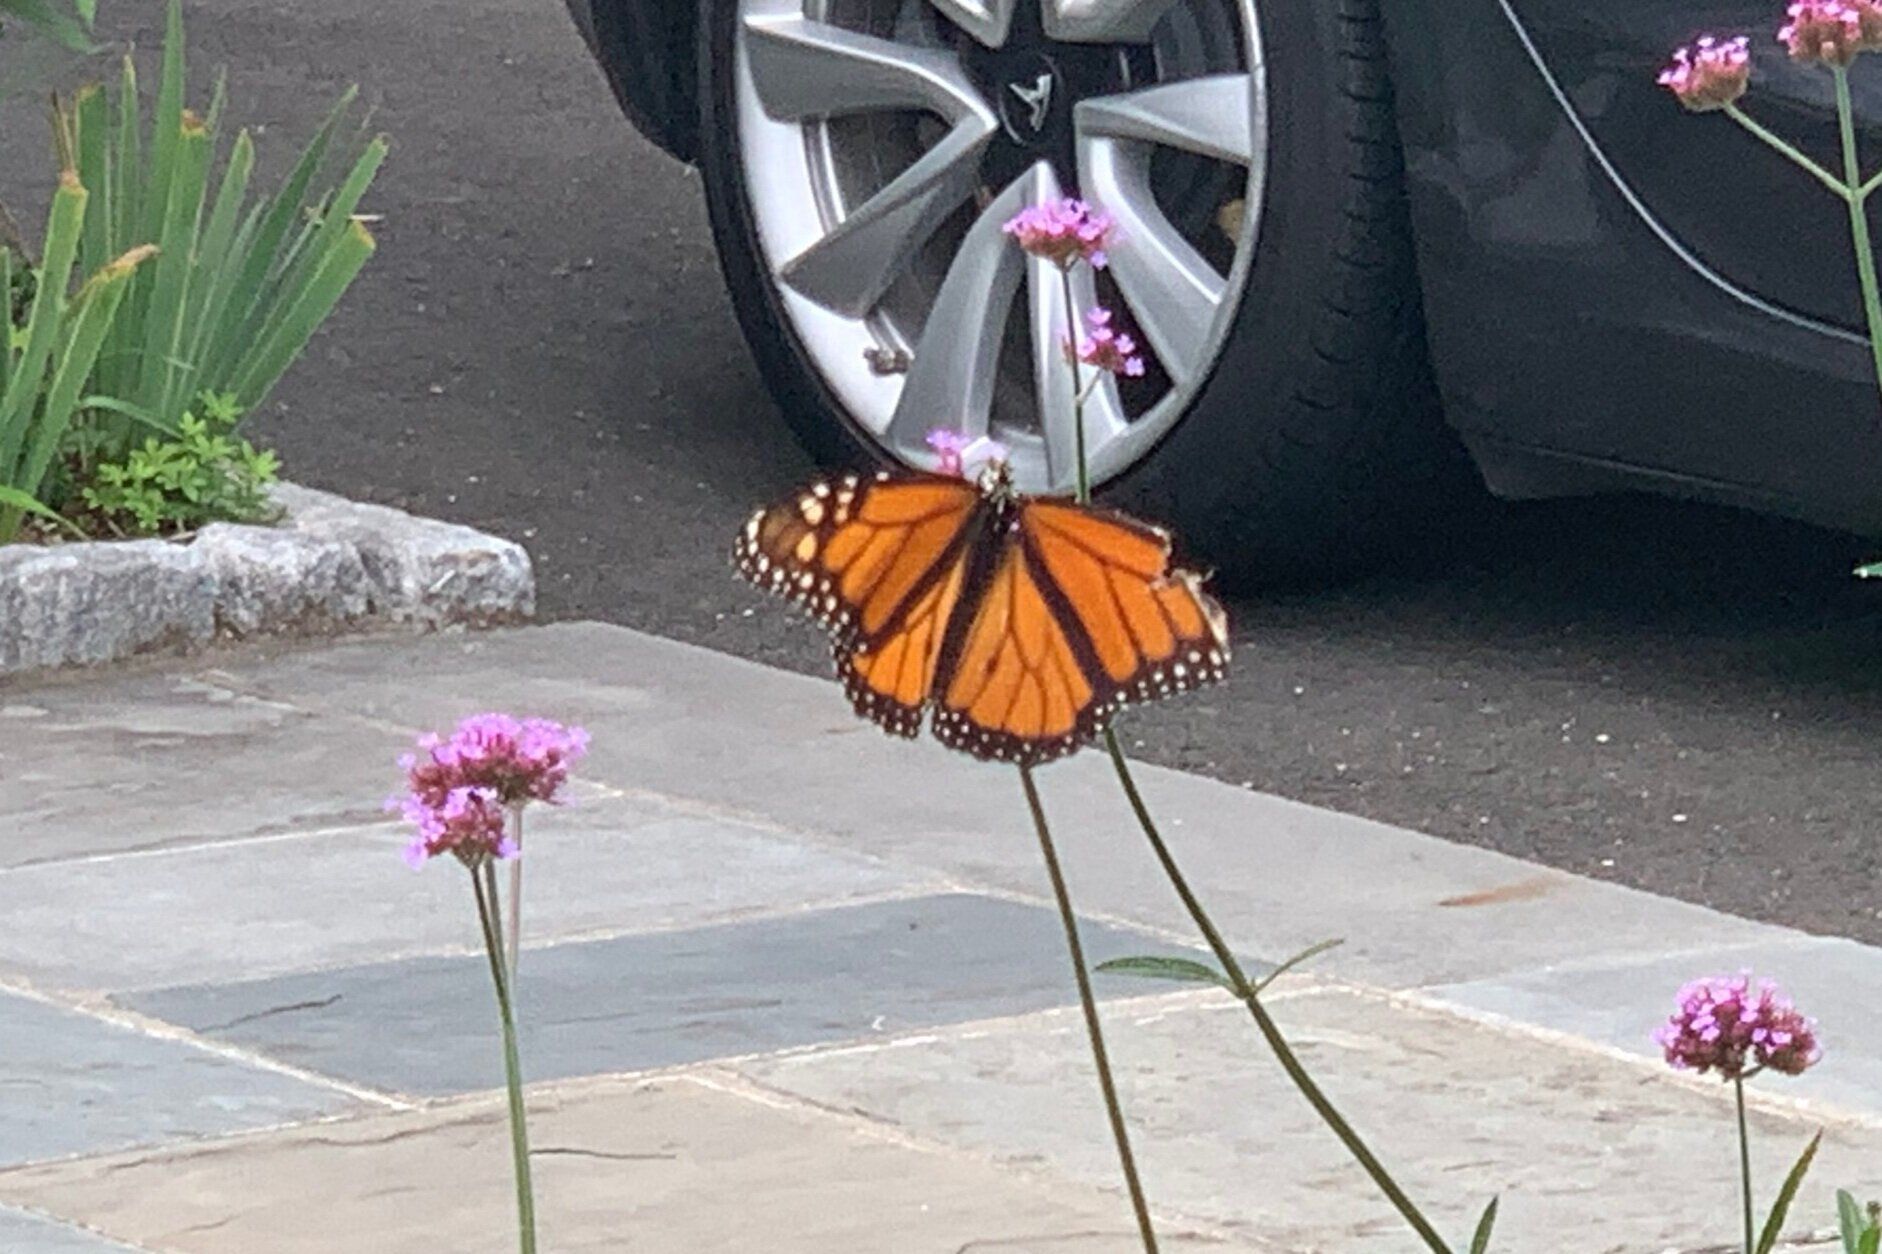 This monarch's upper right wing is damaged, but it's still getting around